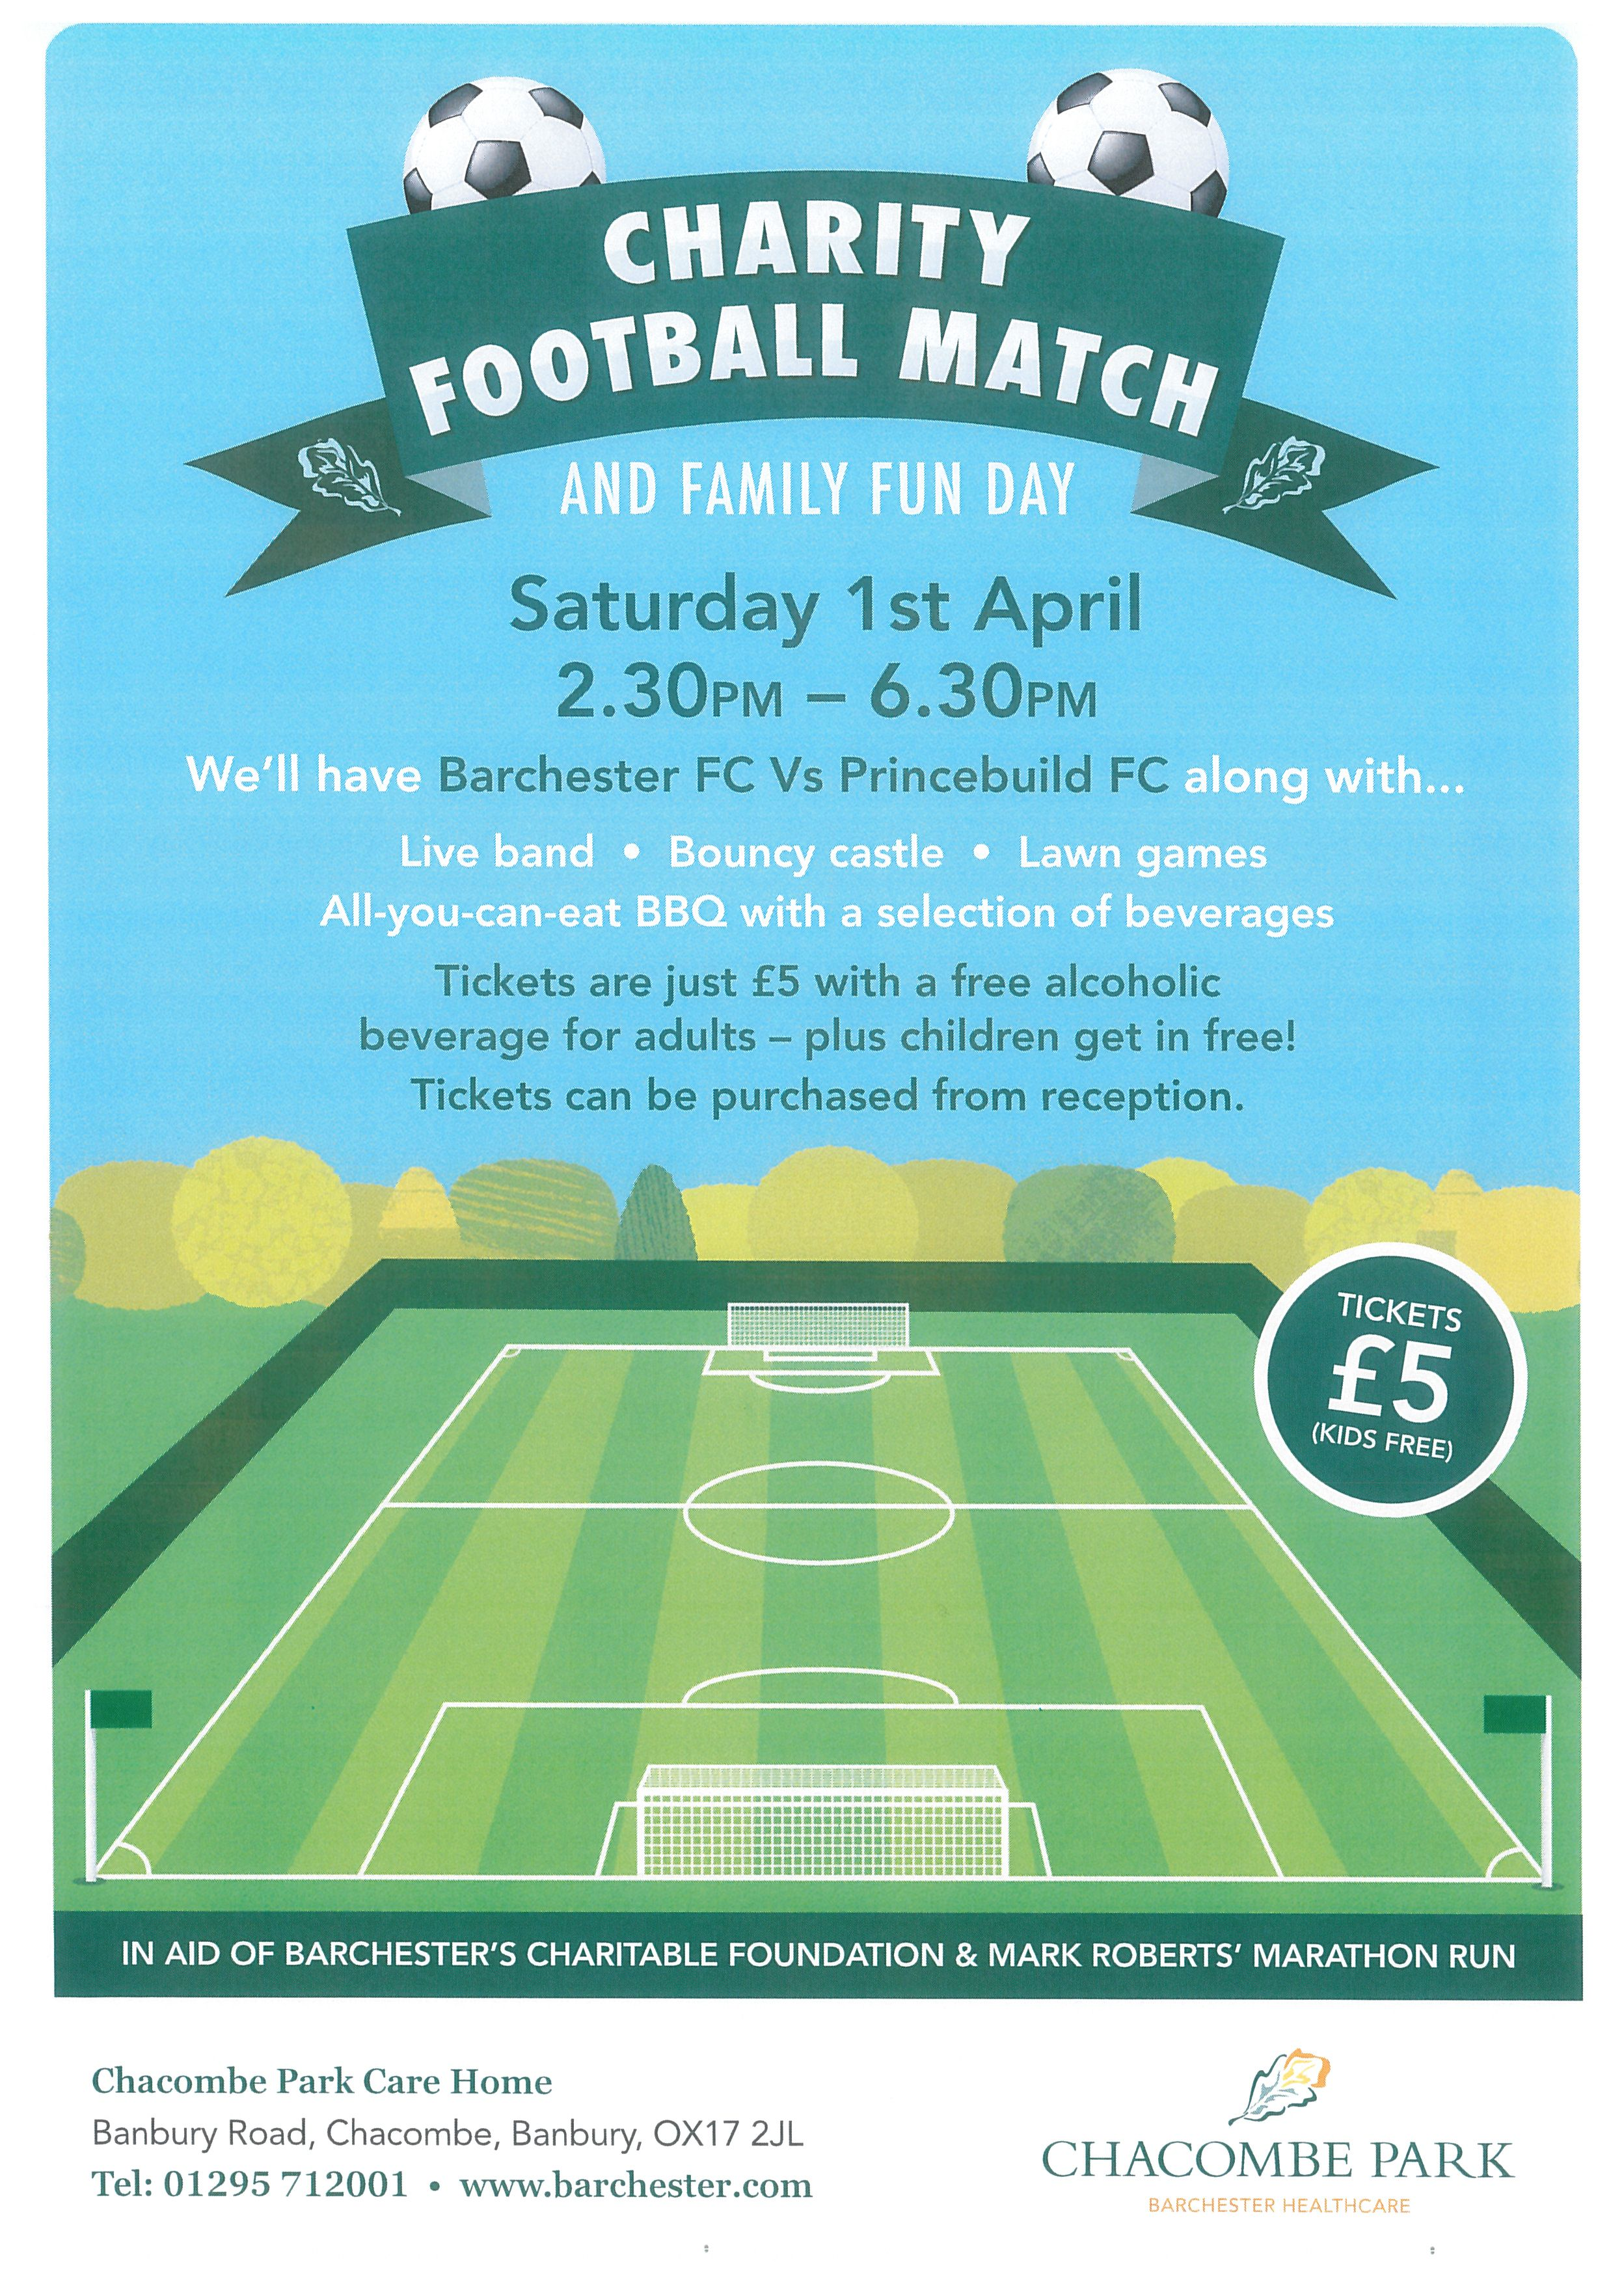 Charity football match and family fun day at Park